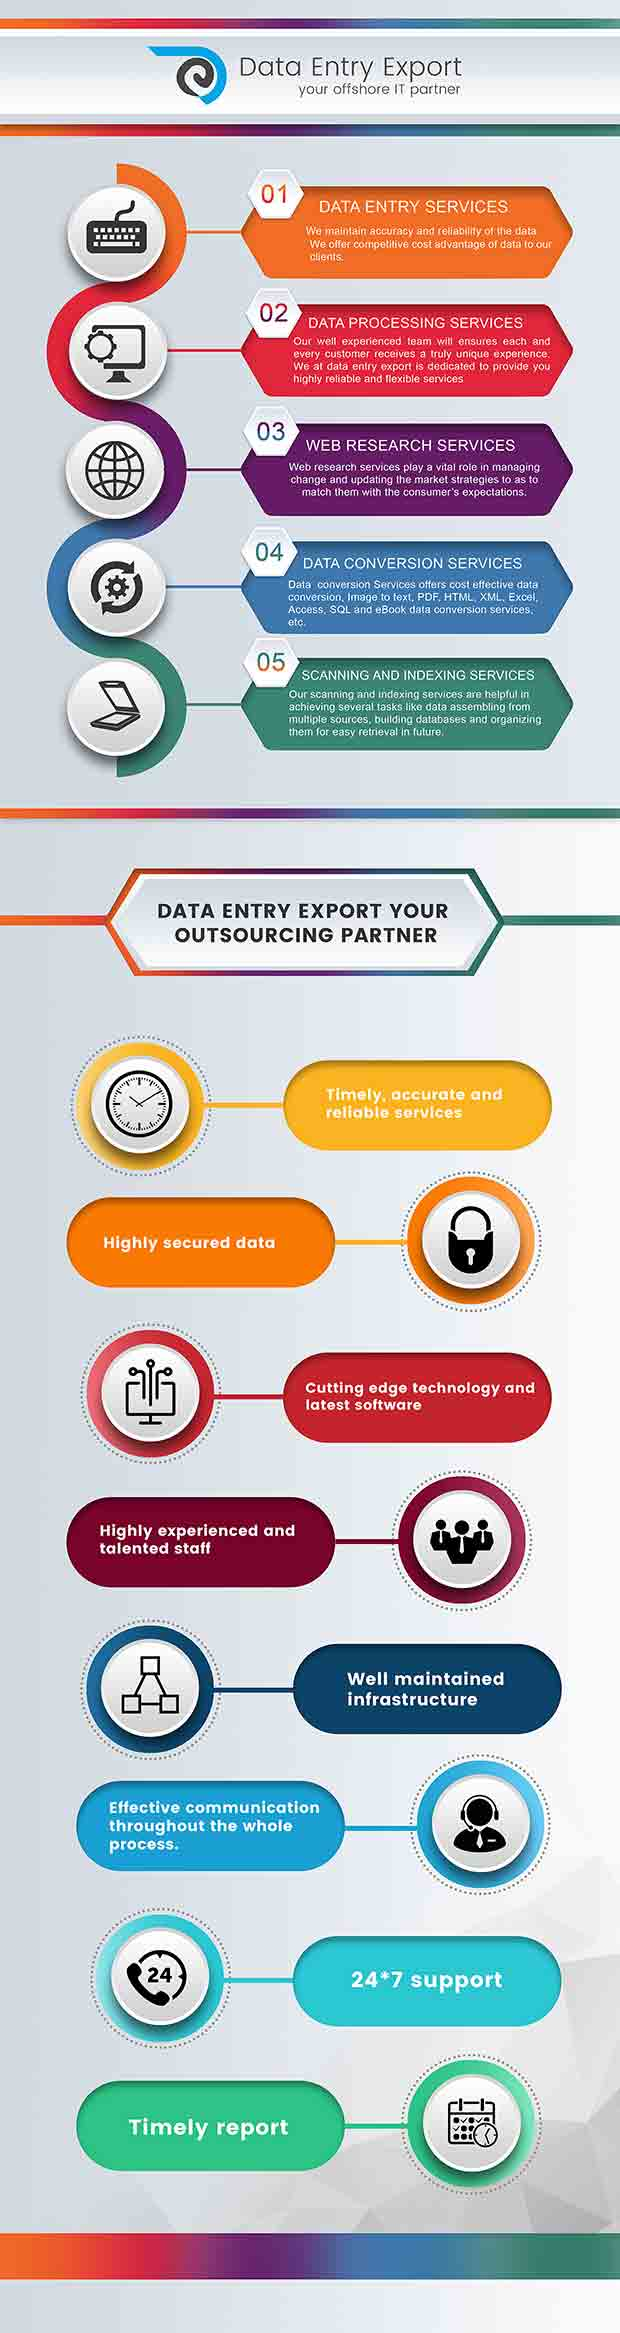 Data Entry Services India- Hiring and Outsourcing